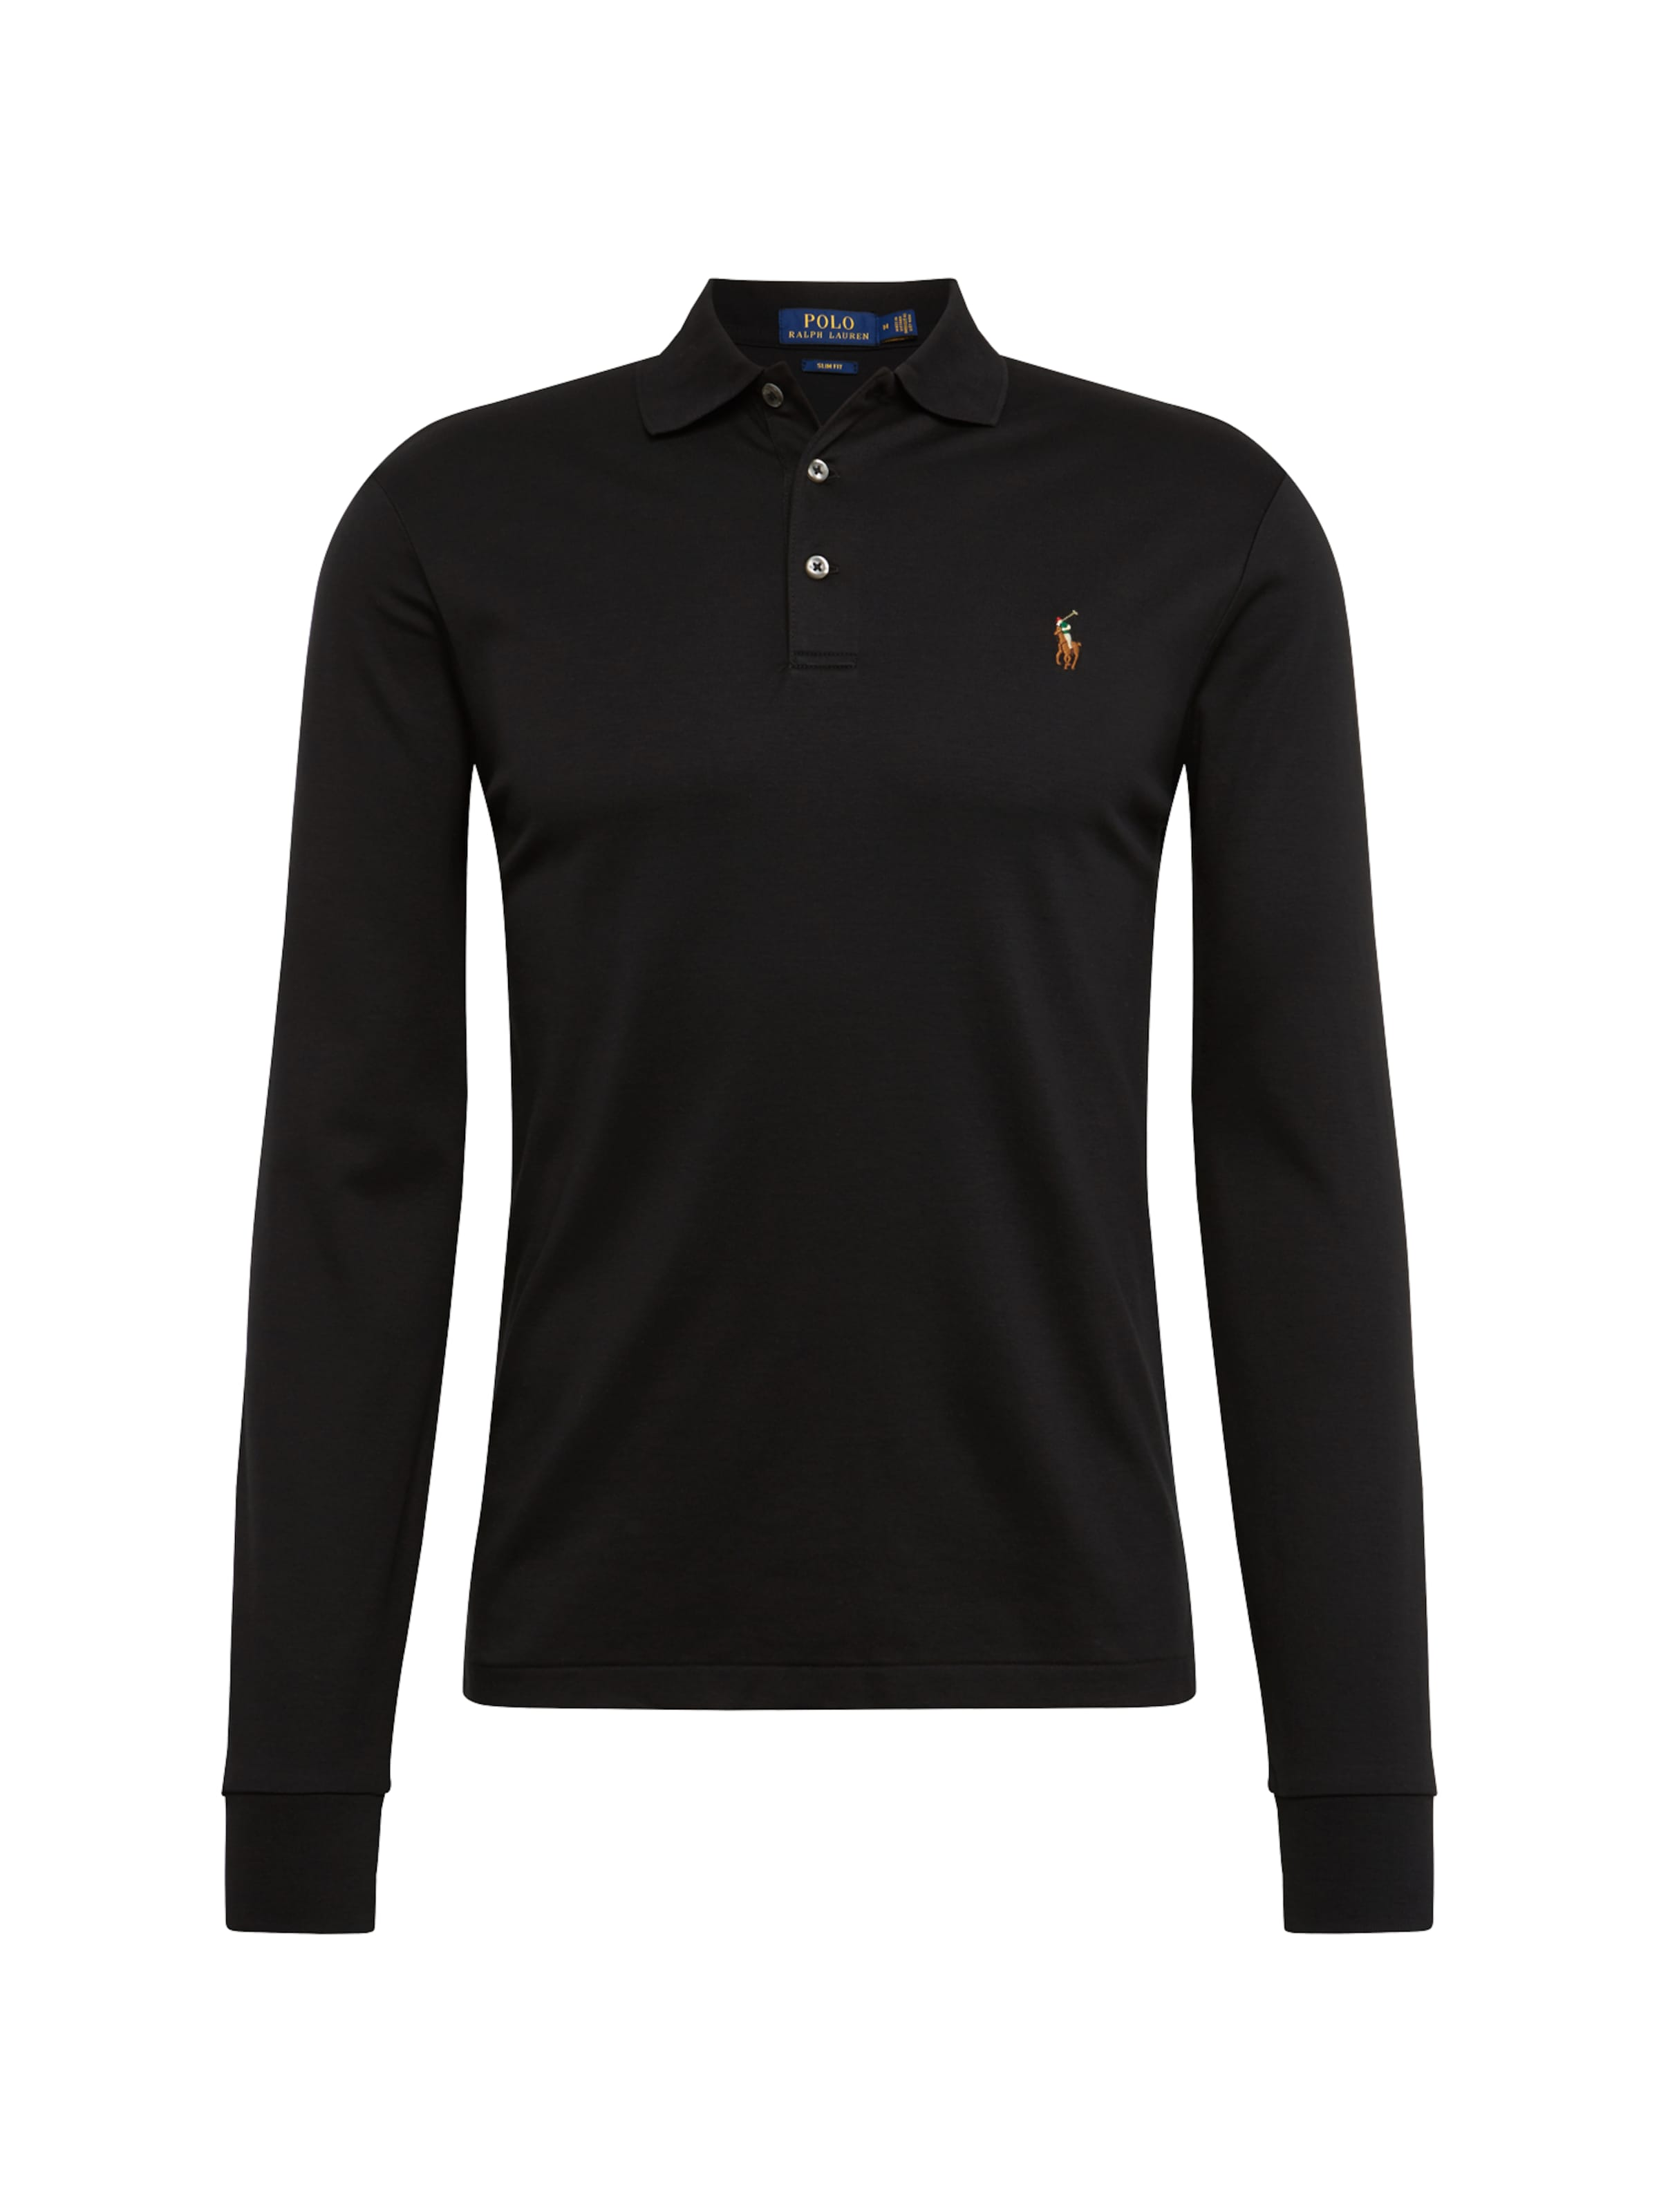 long HerrenShirtsamp; Ralph Sleeve In Schwarz Polos knit' 'lskcslm12 Polo Lauren Ym7y6gIbvf